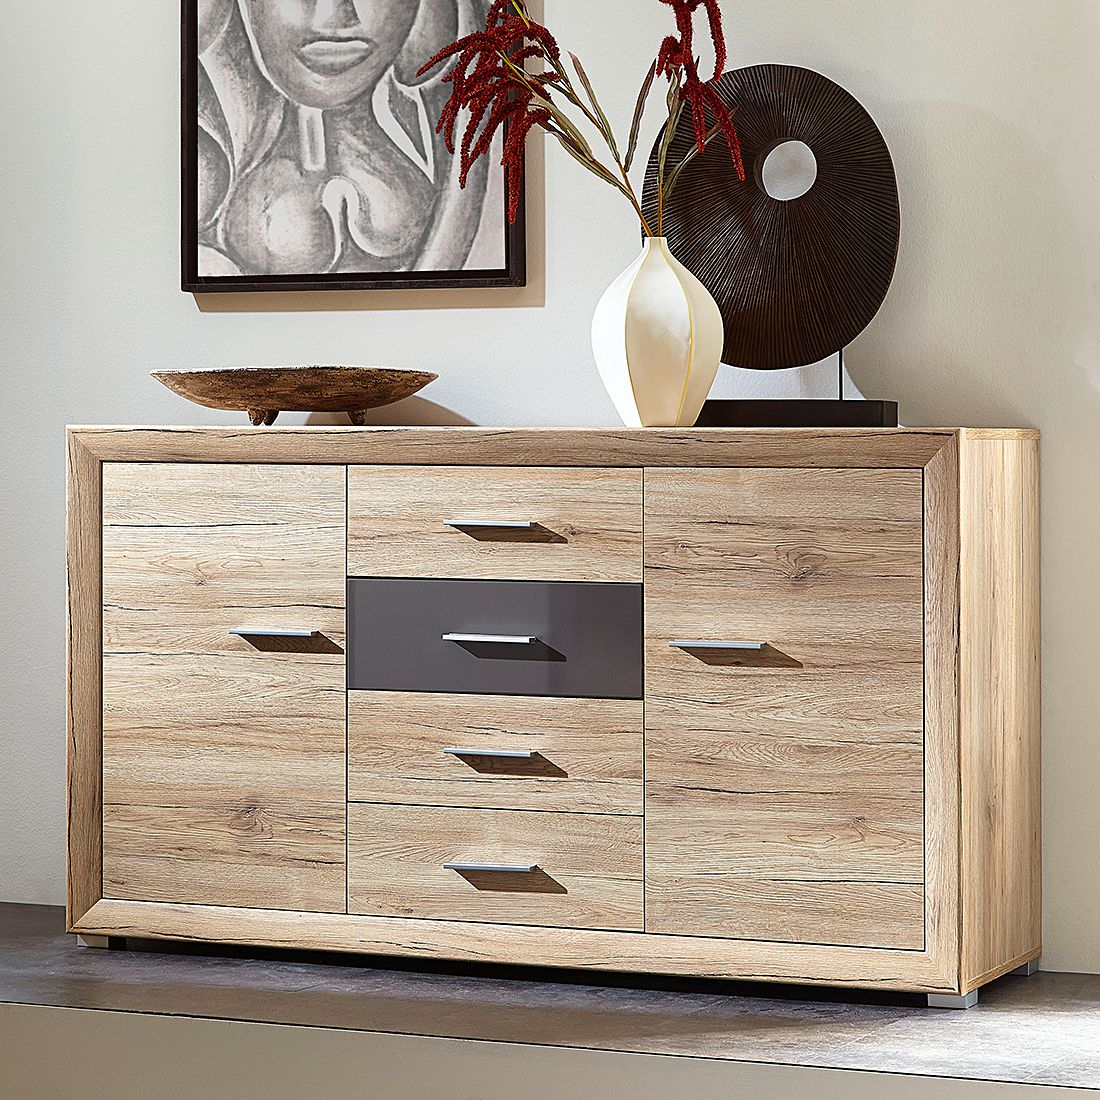 sideboard dexter eiche sanremo dekor hell modoform g nstig. Black Bedroom Furniture Sets. Home Design Ideas